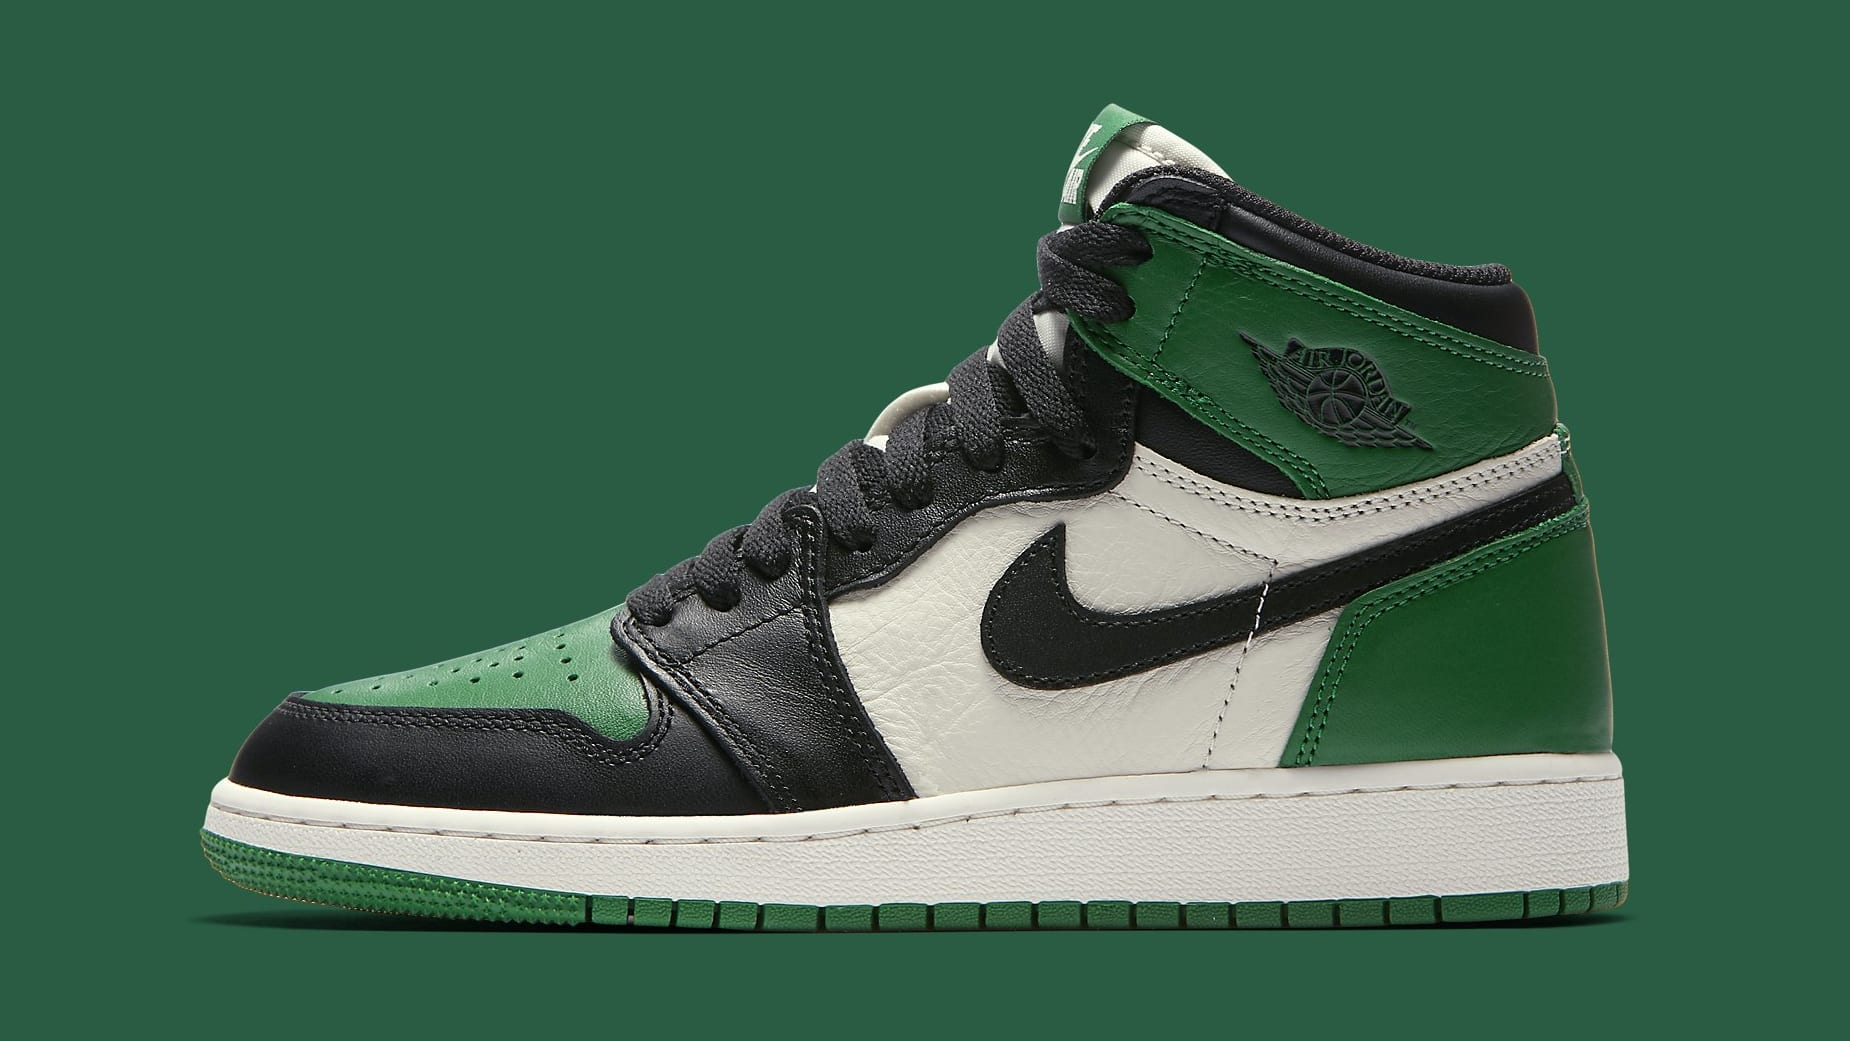 air-jordan-1-gs-pine-green-575441-302-lateral